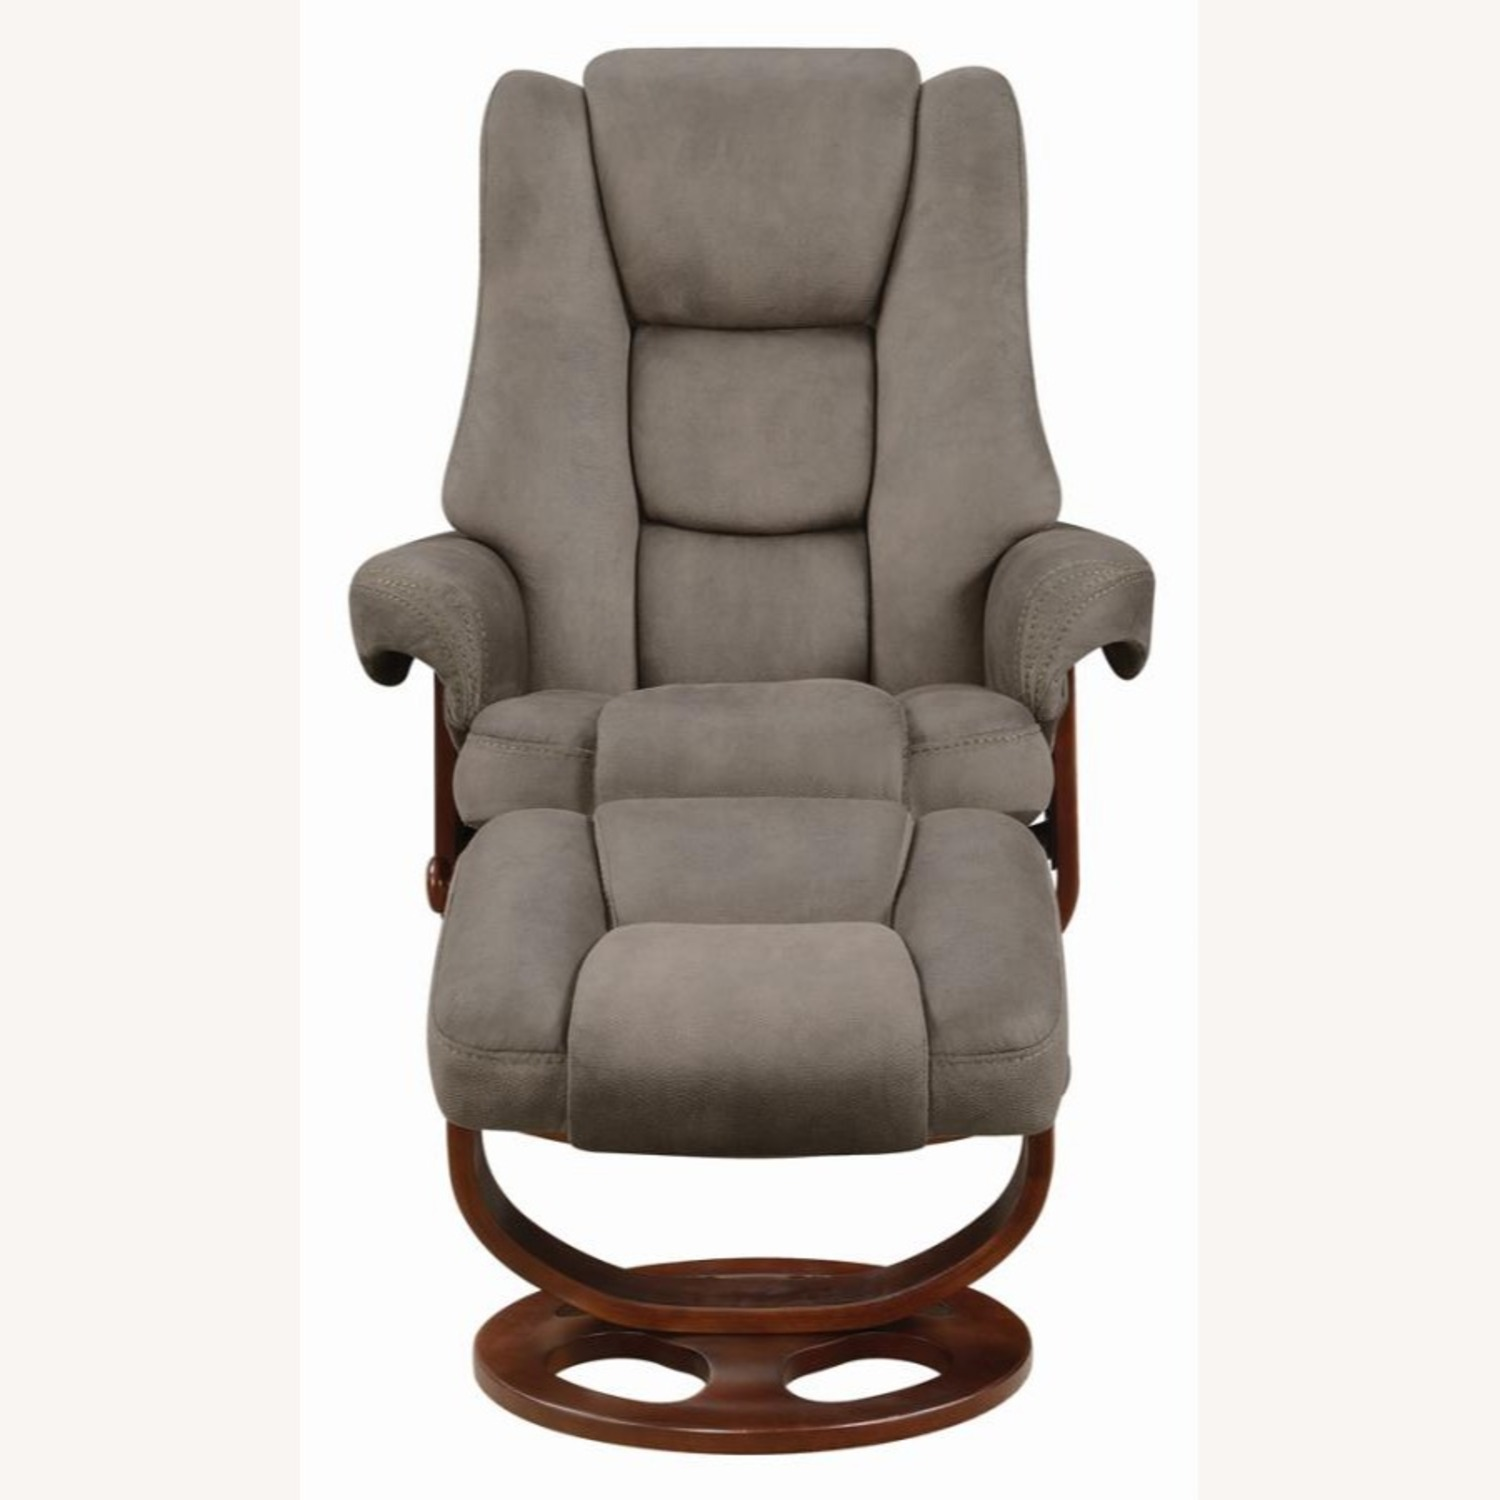 Recliner W/ Ottoman In 2-Tone Grey Faux Suede - image-1